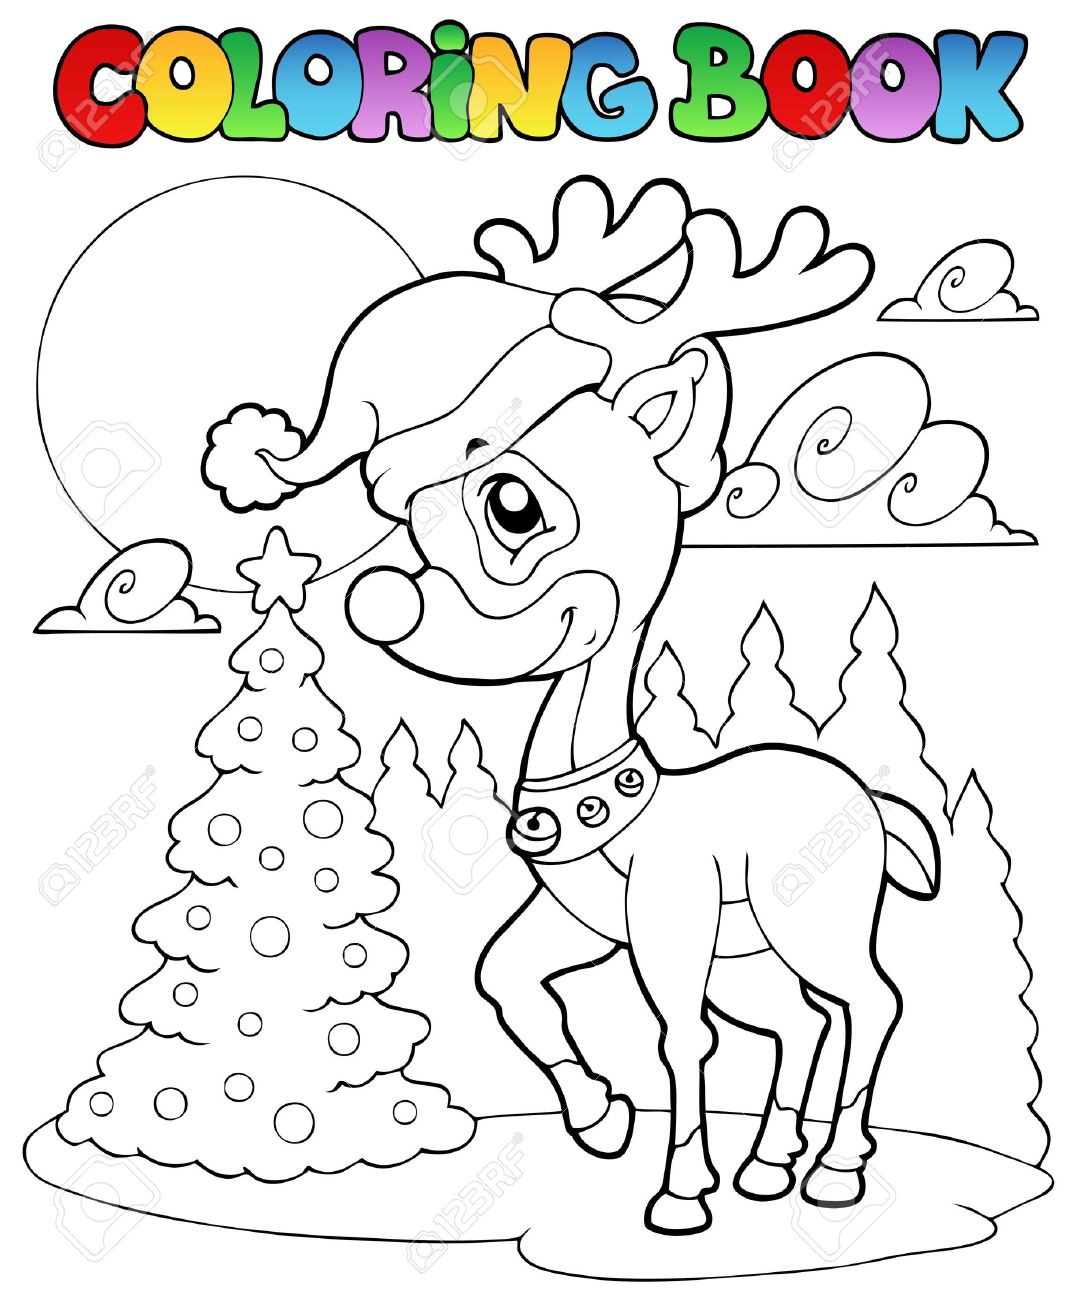 coloring book christmas deer 1 vector illustration stock vector 10912666